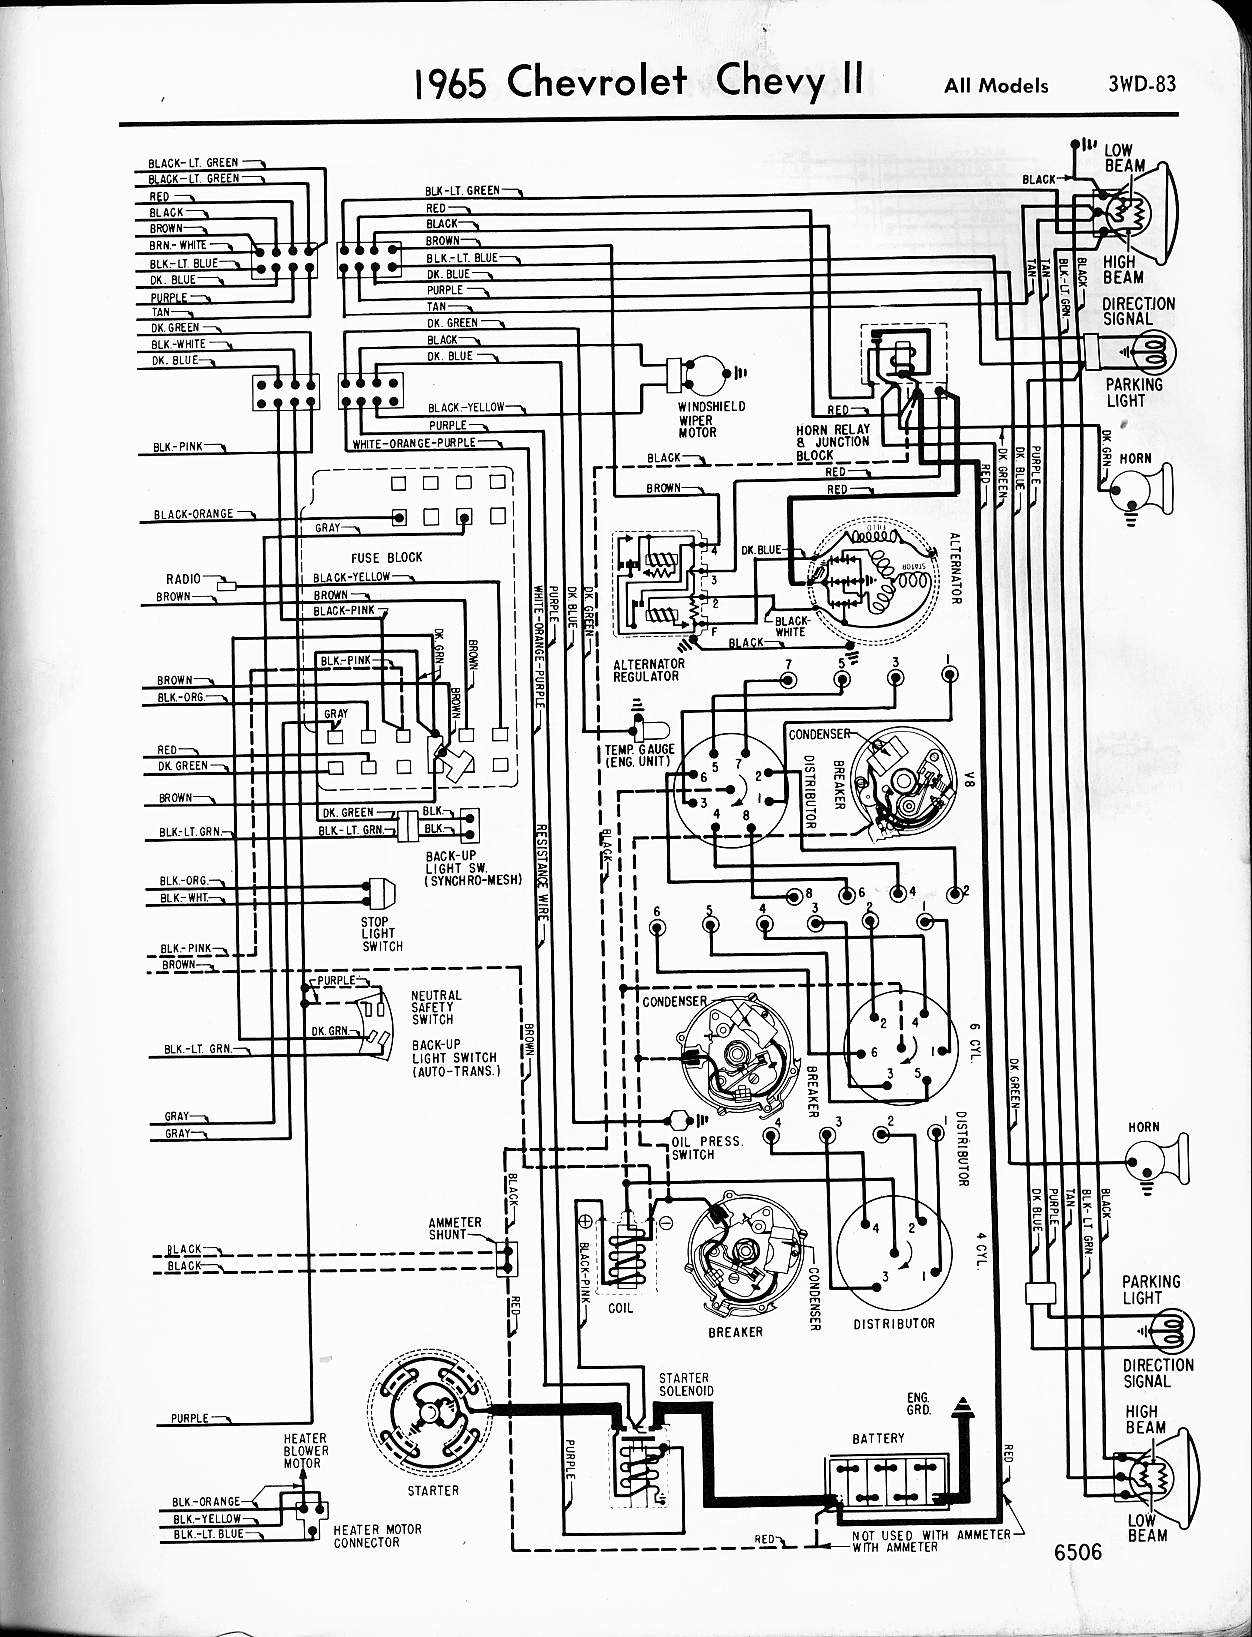 1963 Corvette Wiring Diagram | Wiring Diagram on 1969 camaro wiring diagram, 70 chevelle wiring diagram, 1966 chevelle wiring diagram, 1966 impala wiring diagram, ignition box wiring diagram, 1968 camaro wiring diagram, 1964 nova exhaust system, 1964 nova radio, 1959 impala wiring diagram, 1965 chevelle wiring diagram, 1960 impala wiring diagram, 1965 impala wiring diagram, 1970 chevelle wiring diagram, 1968 chevelle wiring diagram, 1967 camaro wiring diagram, 1967 impala wiring diagram, 64 chevelle wiring diagram, 1964 nova relay, 1963 corvette wiring diagram, 1964 nova headlight,